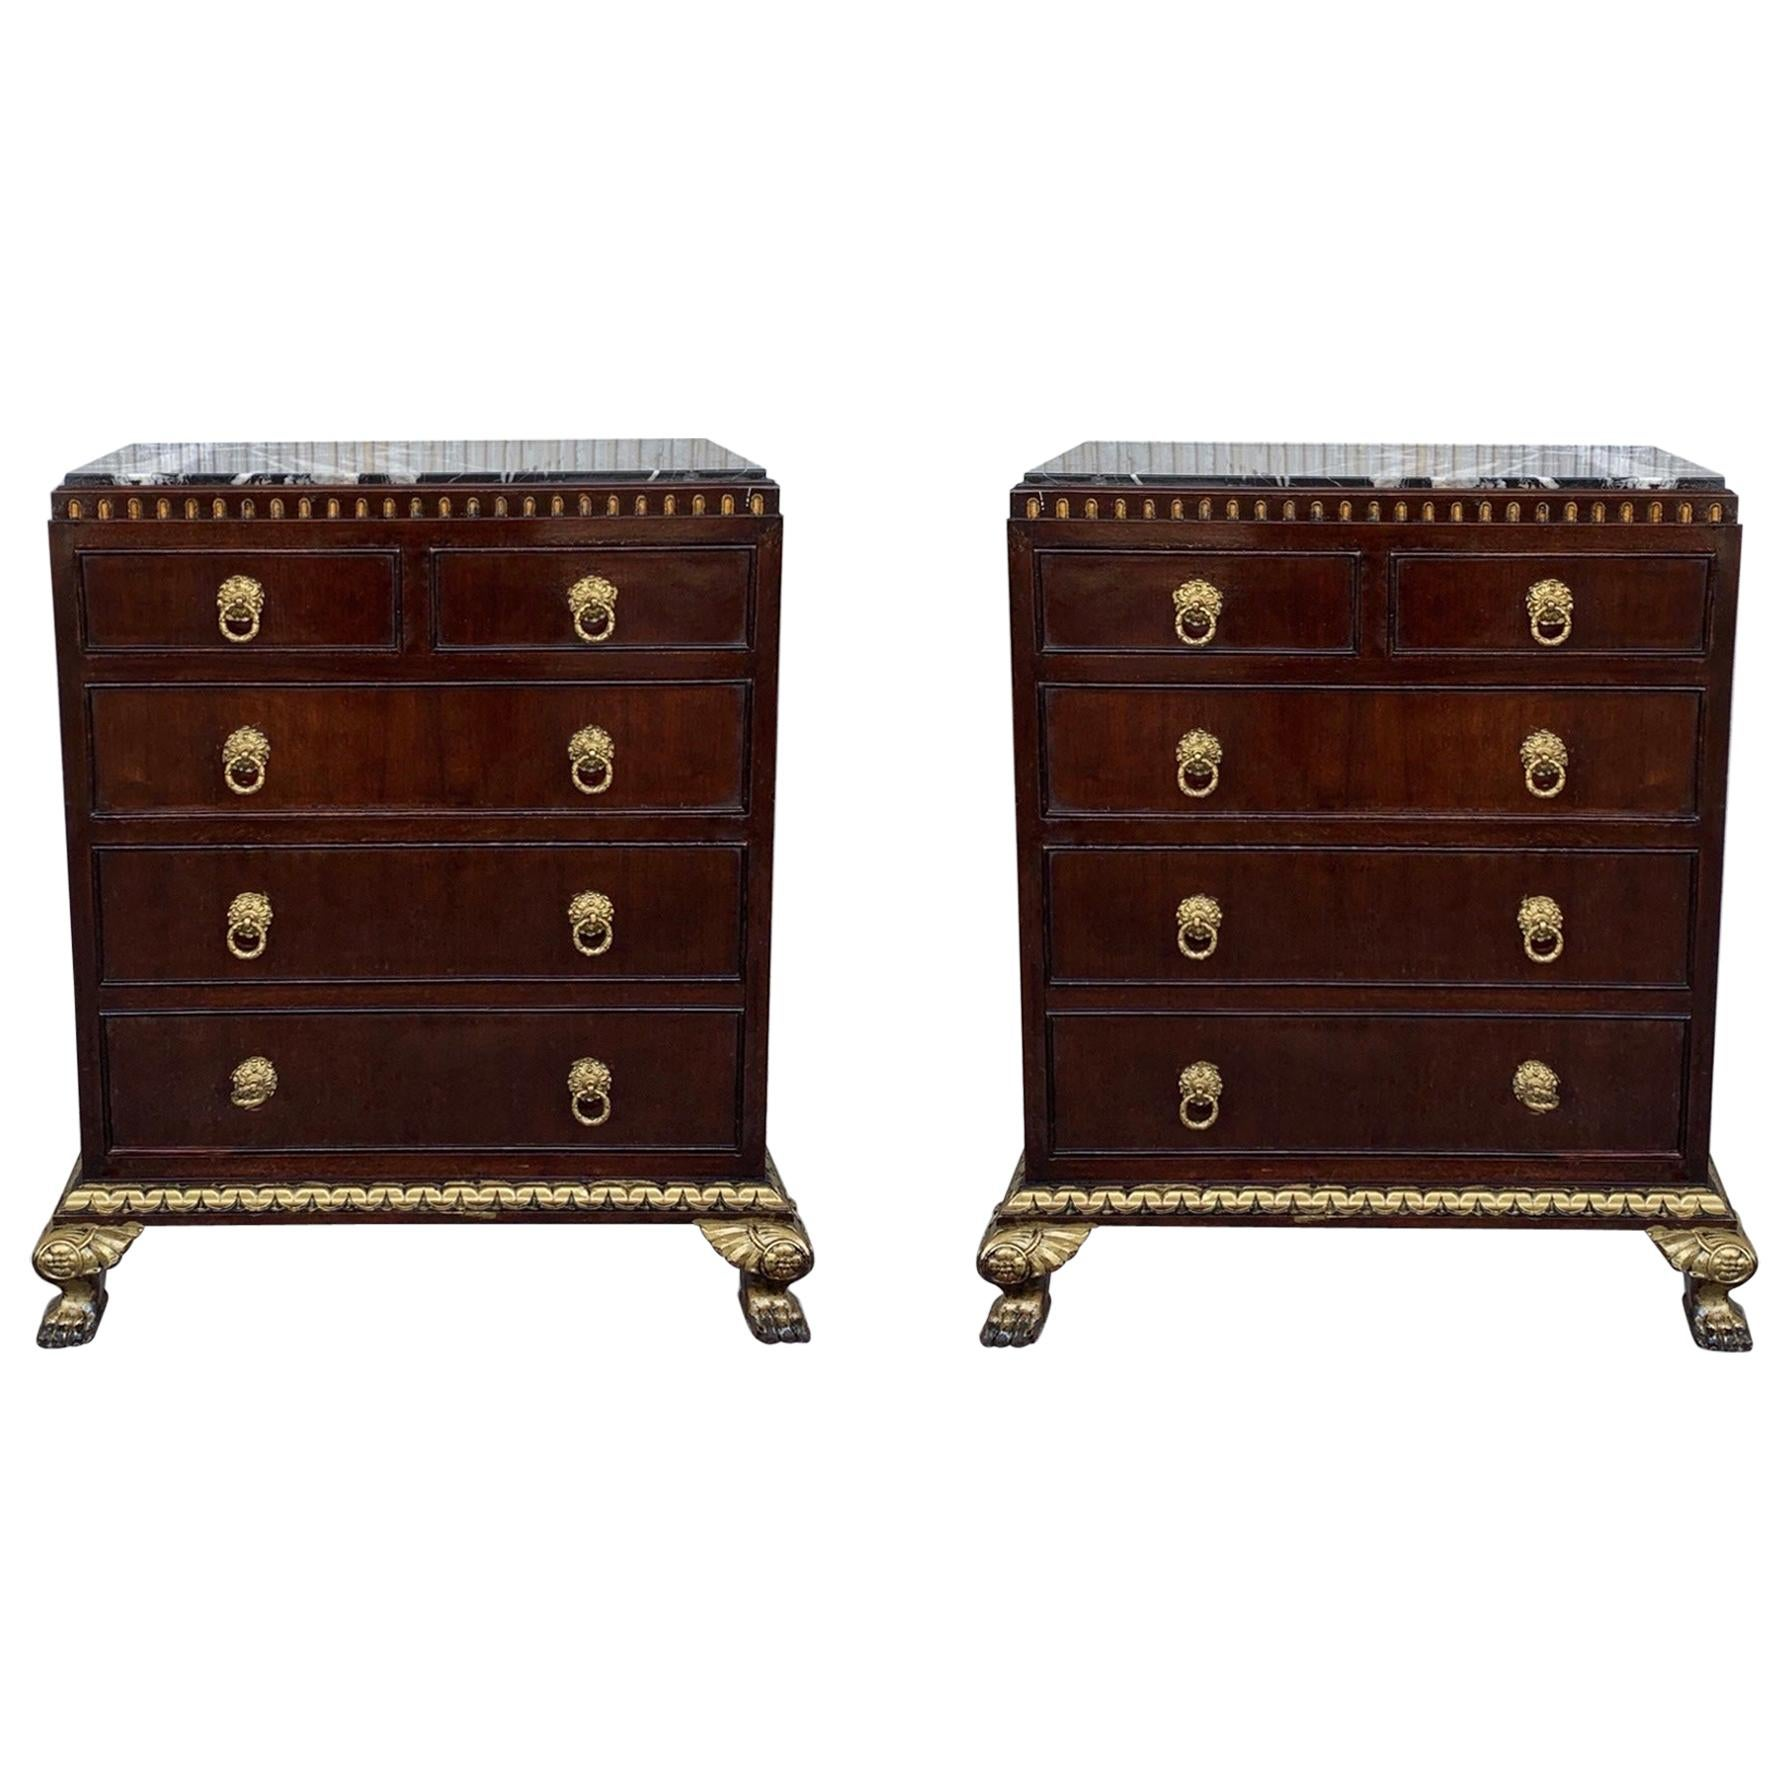 Pair of Hollywood Regency Style Nightstands with Drawers, Door and Marble